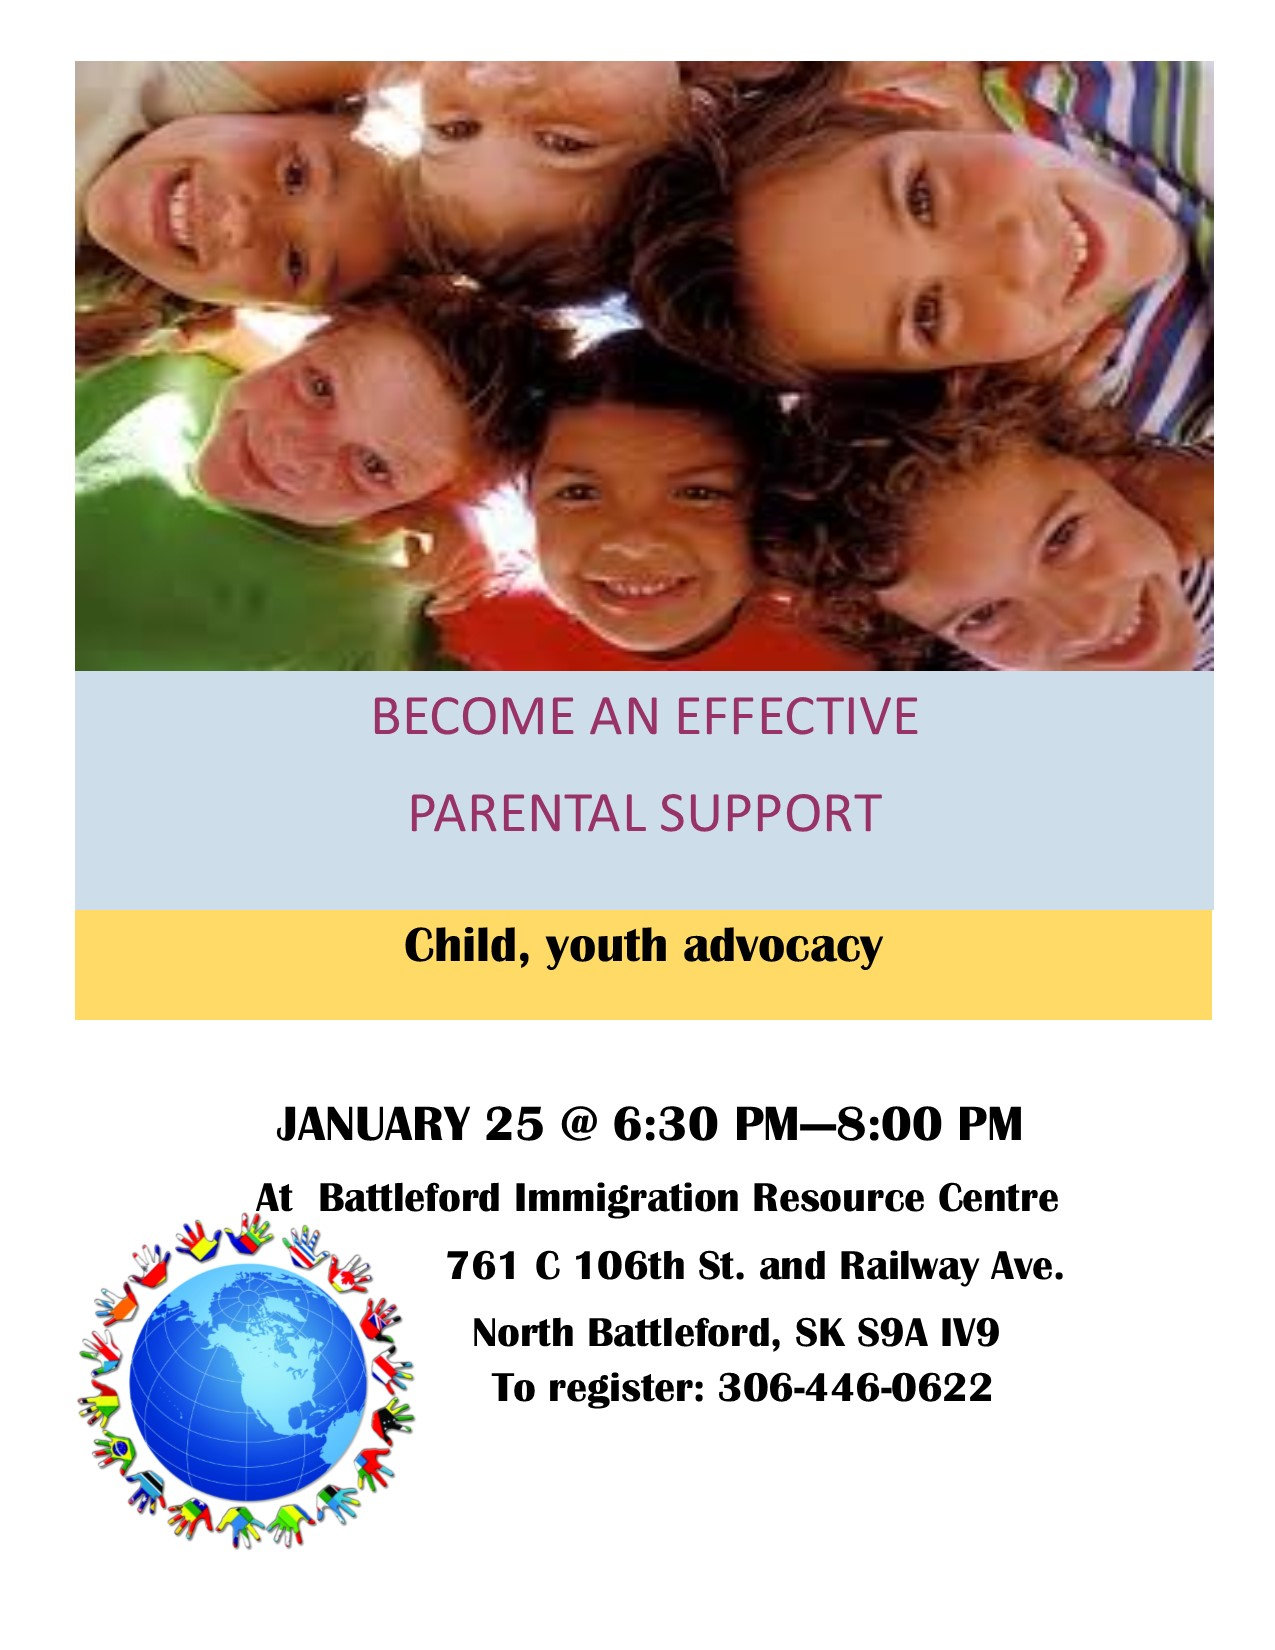 BECOME AN EFFECTIVE PARENTAL SUPPORT